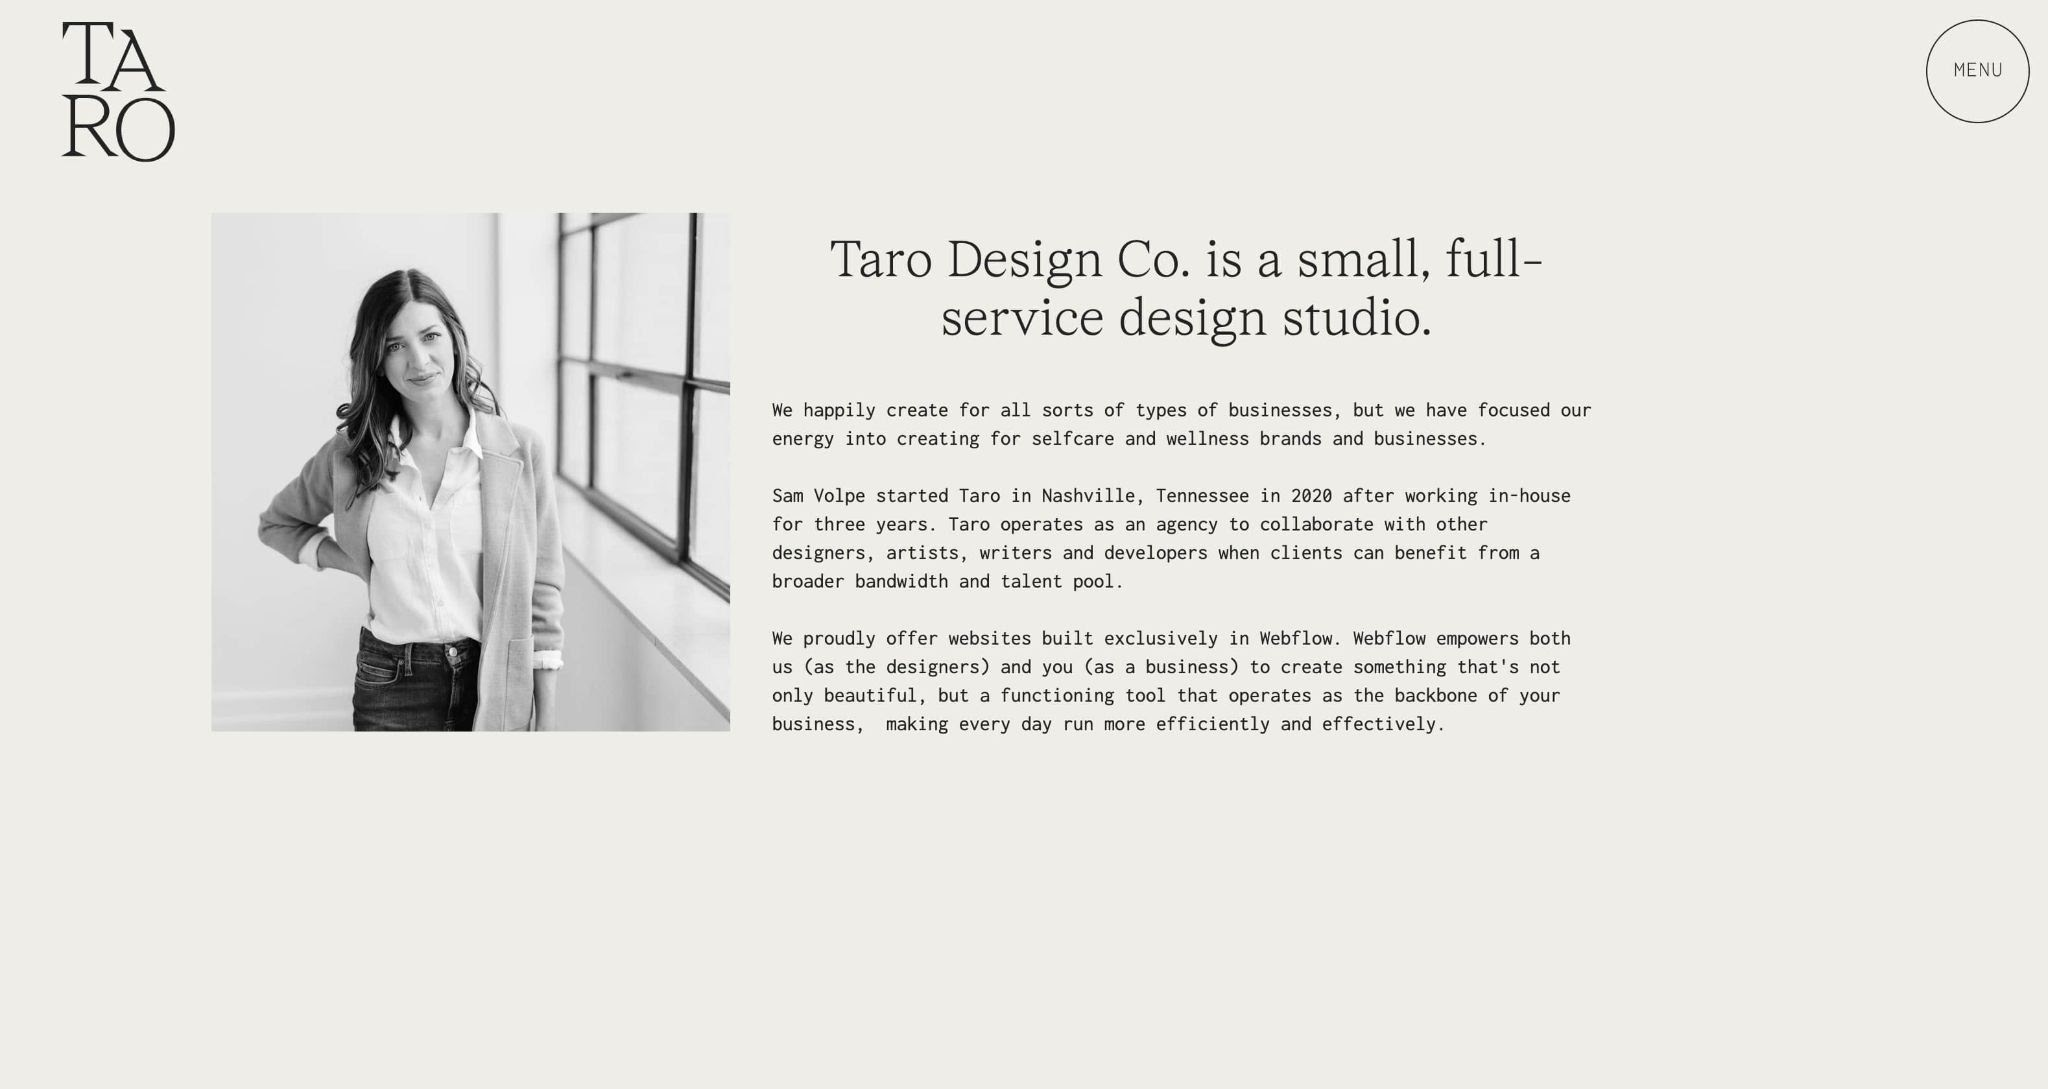 An image of the Taro Design Co. about section.